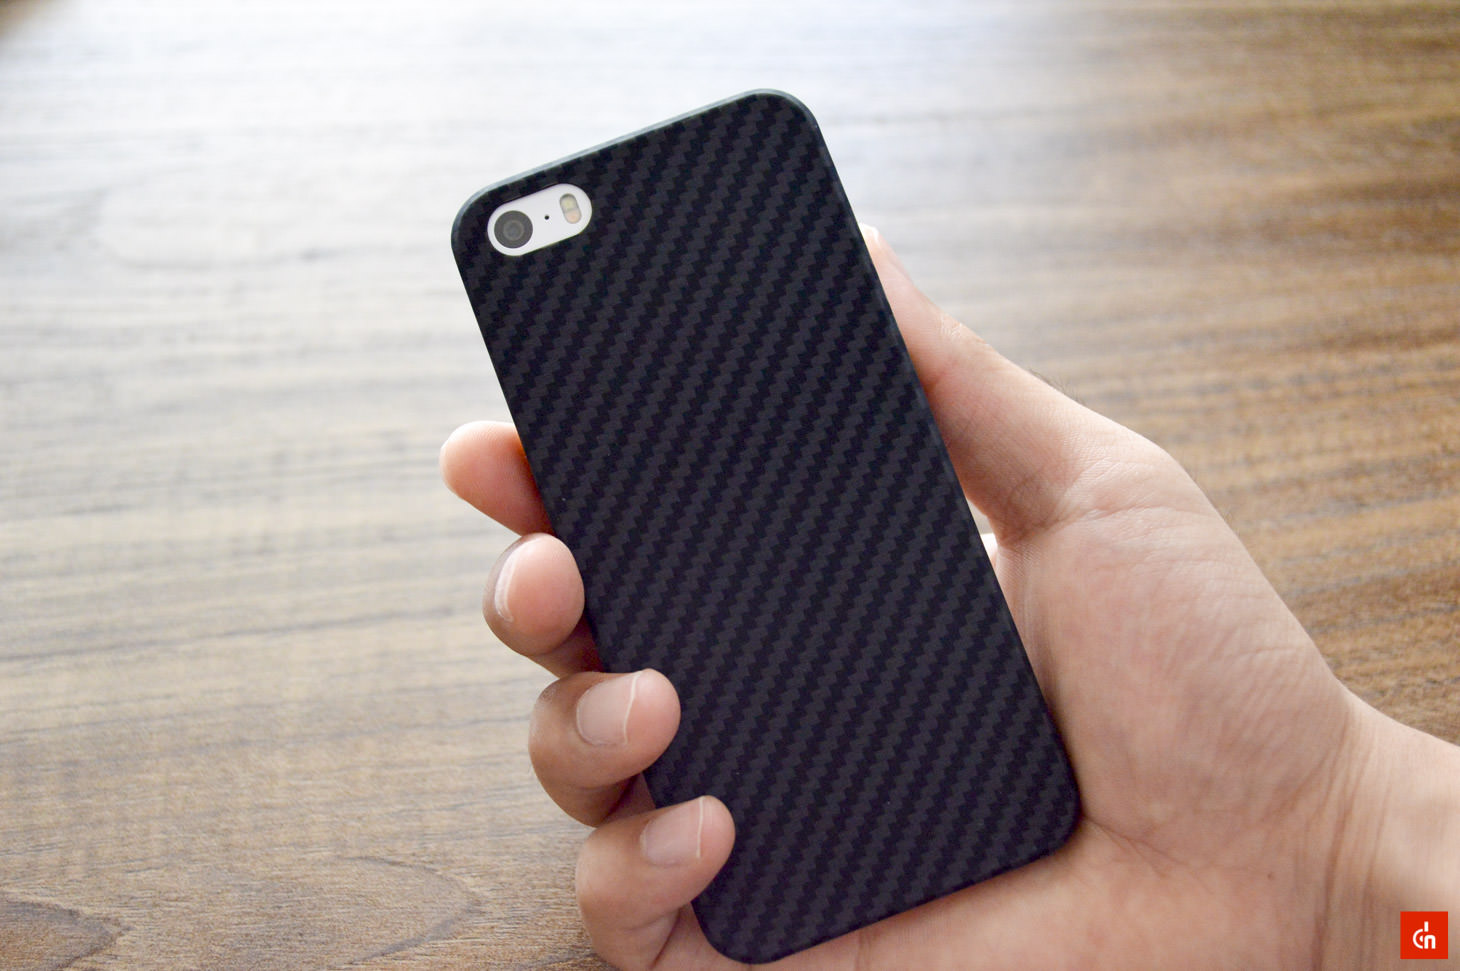 022_20160717_pitaka-carbon-iphonese-case